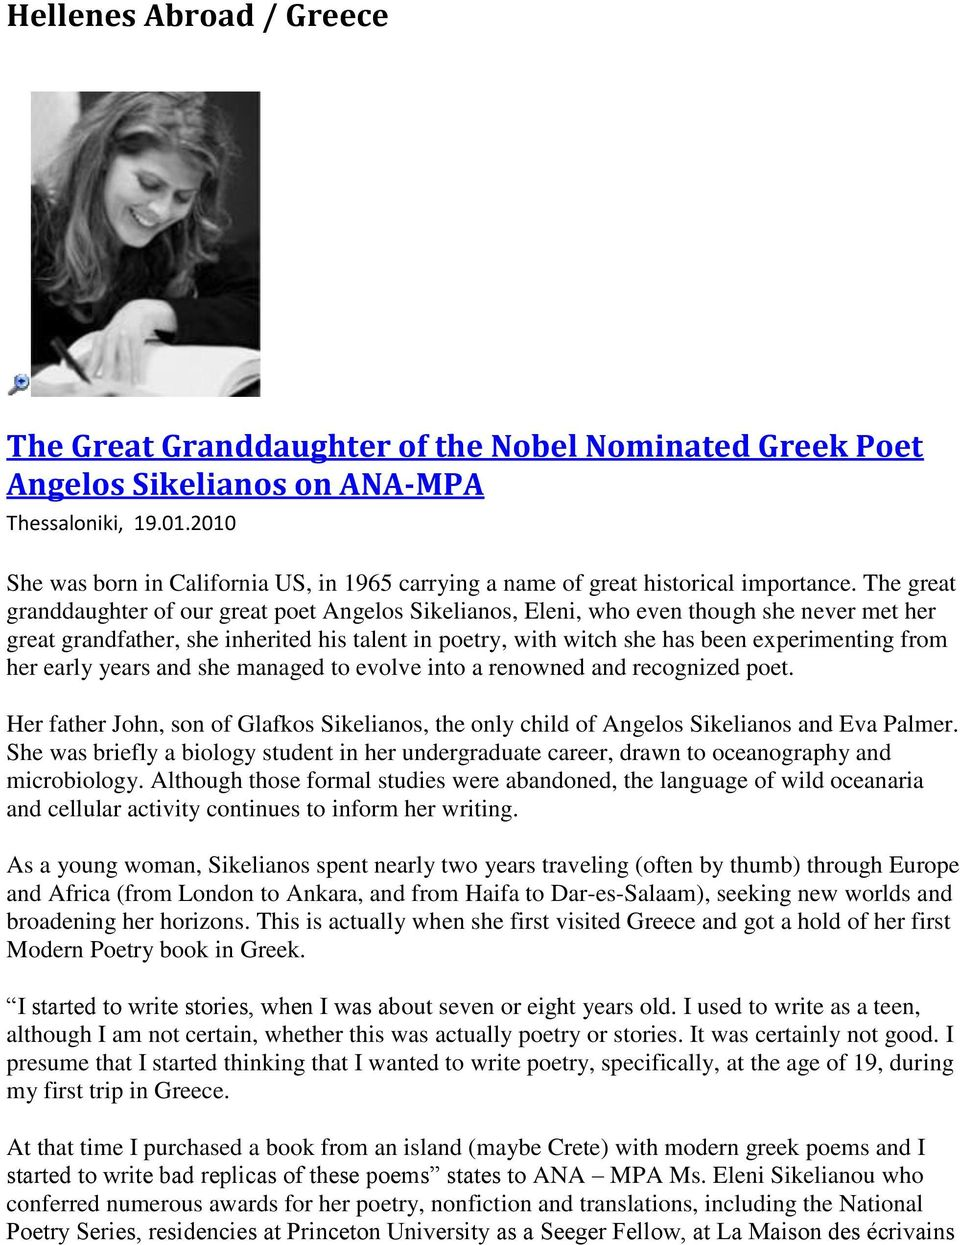 The great granddaughter of our great poet Angelos Sikelianos, Eleni, who even though she never met her great grandfather, she inherited his talent in poetry, with witch she has been experimenting